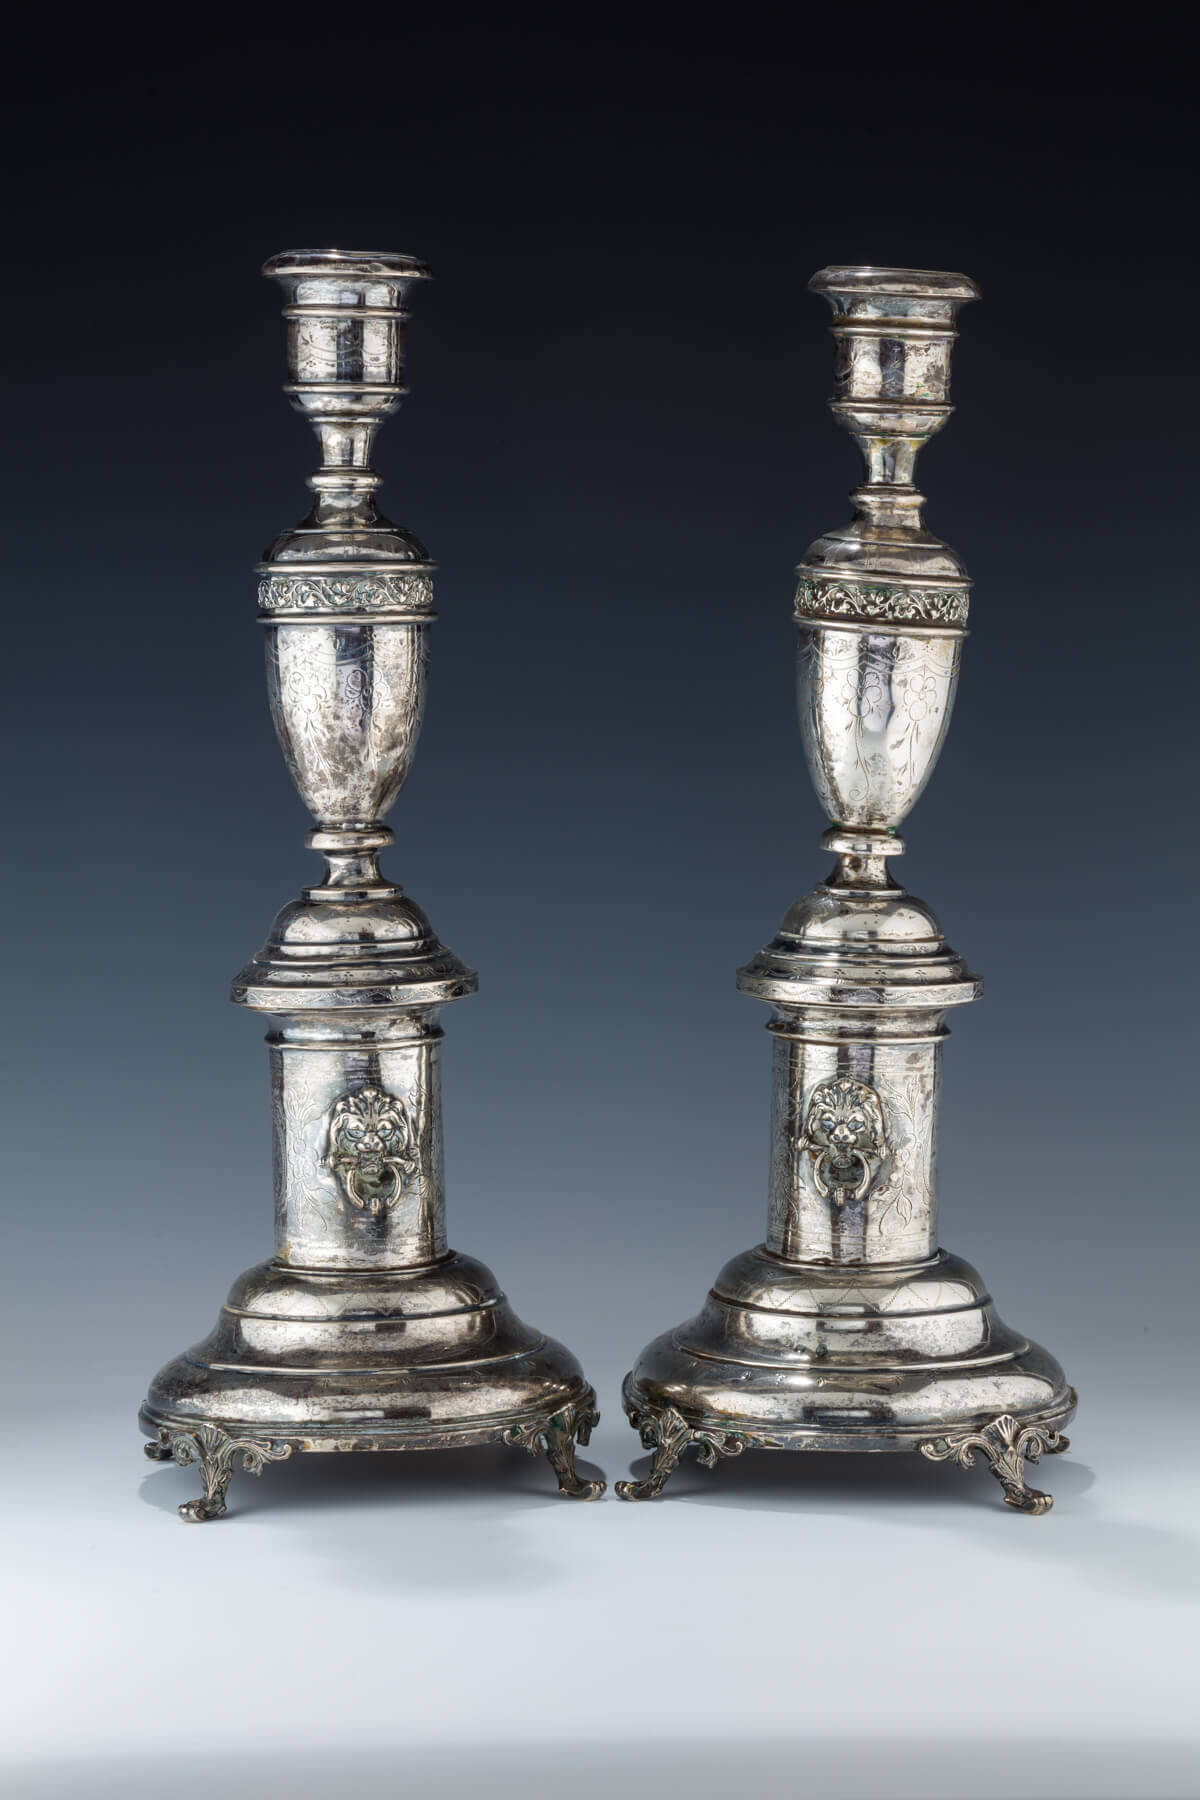 027. A PAIR OF LARGE SILVER CANDLESTICKS